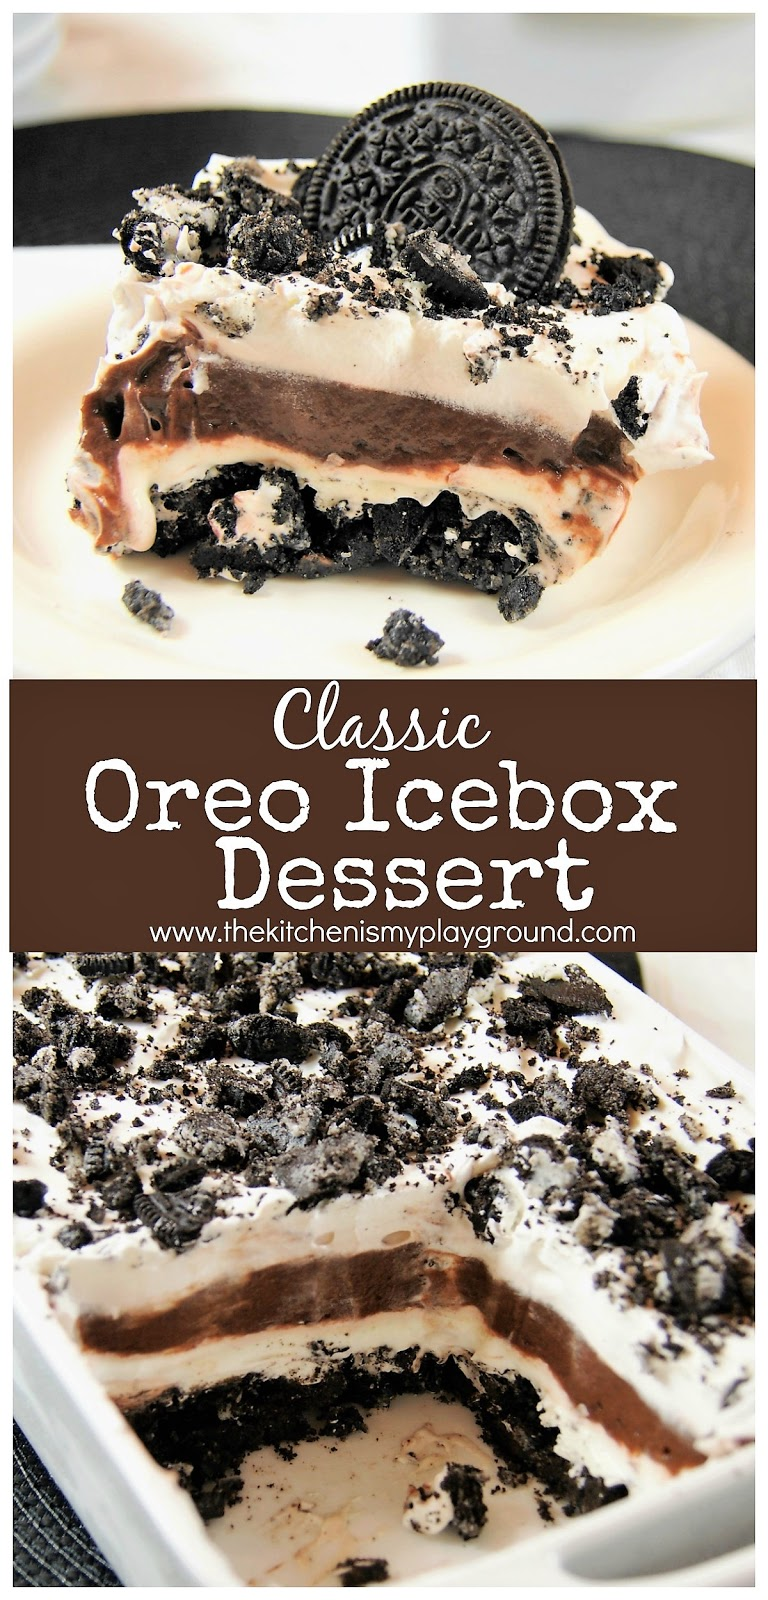 Refreshingly Yummy 2-Ingredient Oreo Icebox Cake